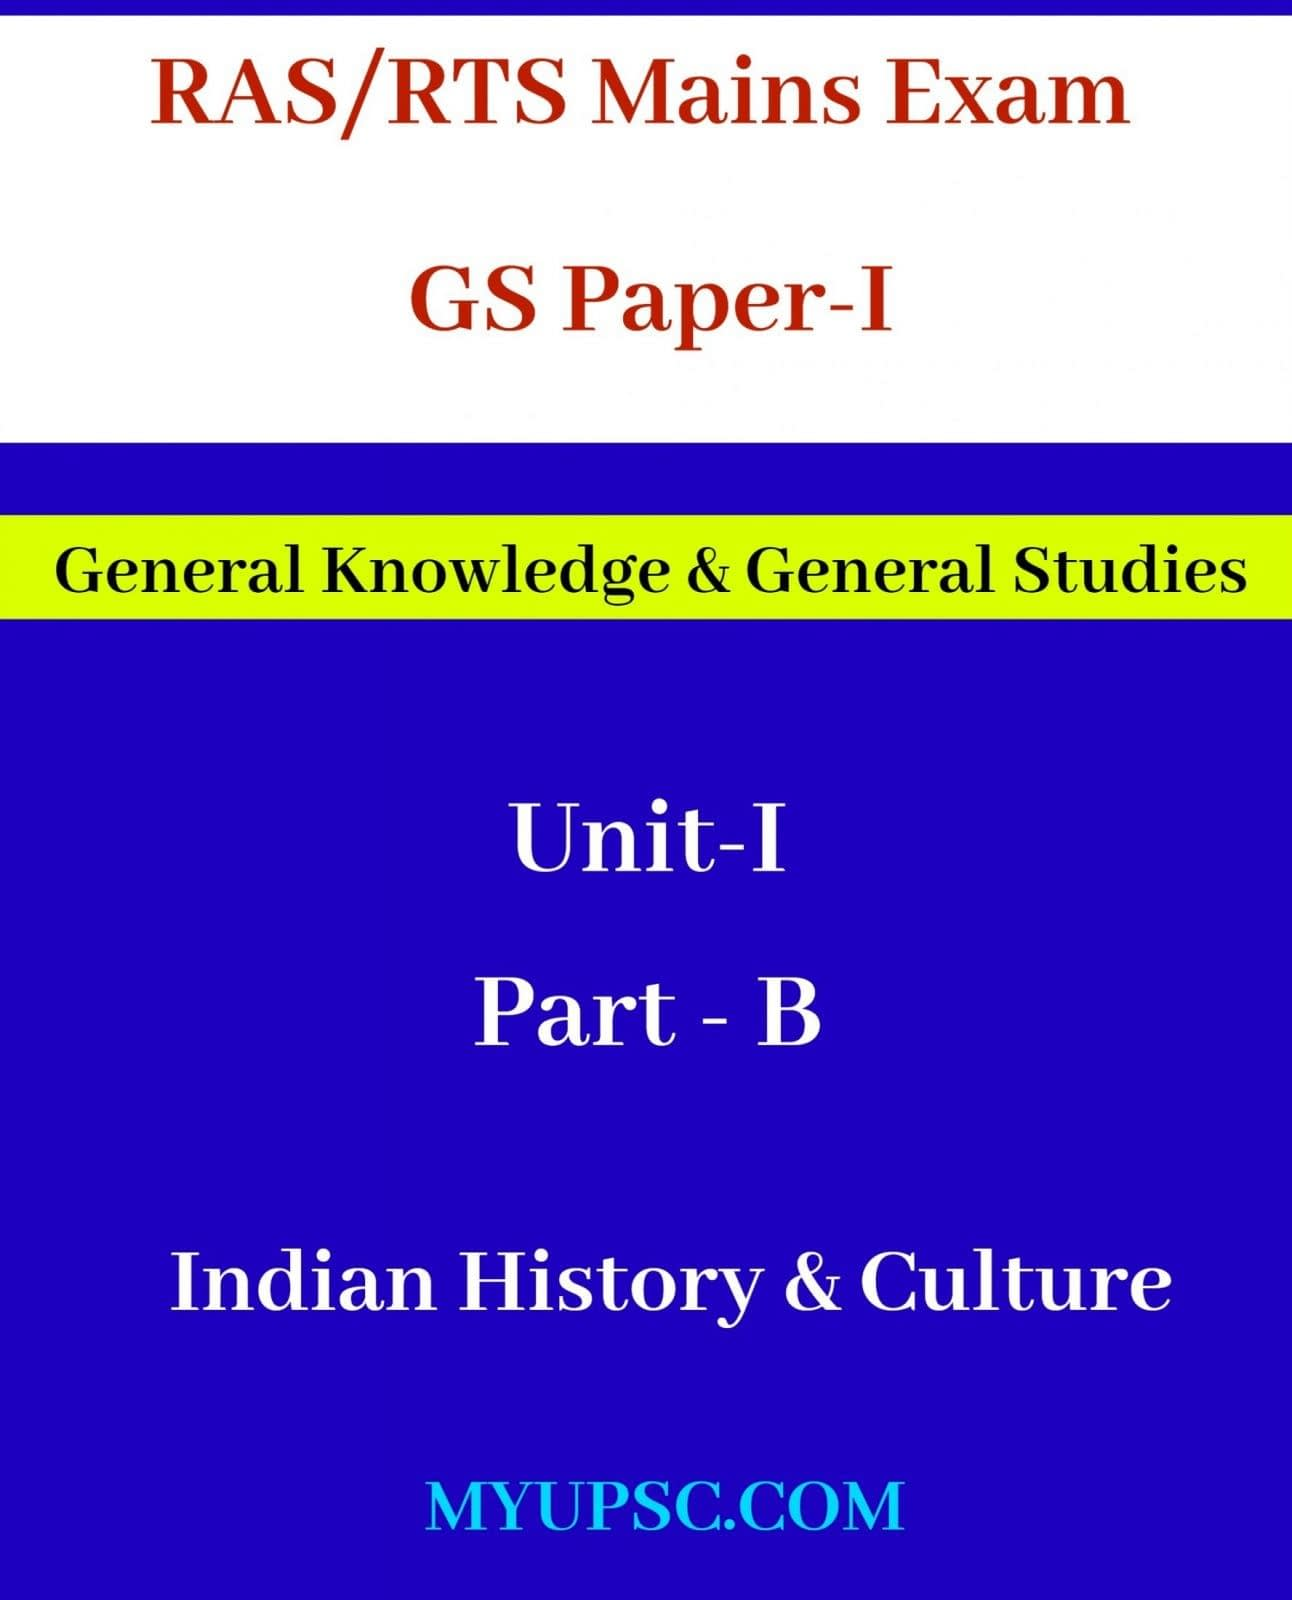 RAS/RTS Mains Exam Paper-I:Part B: Indian History & Culture